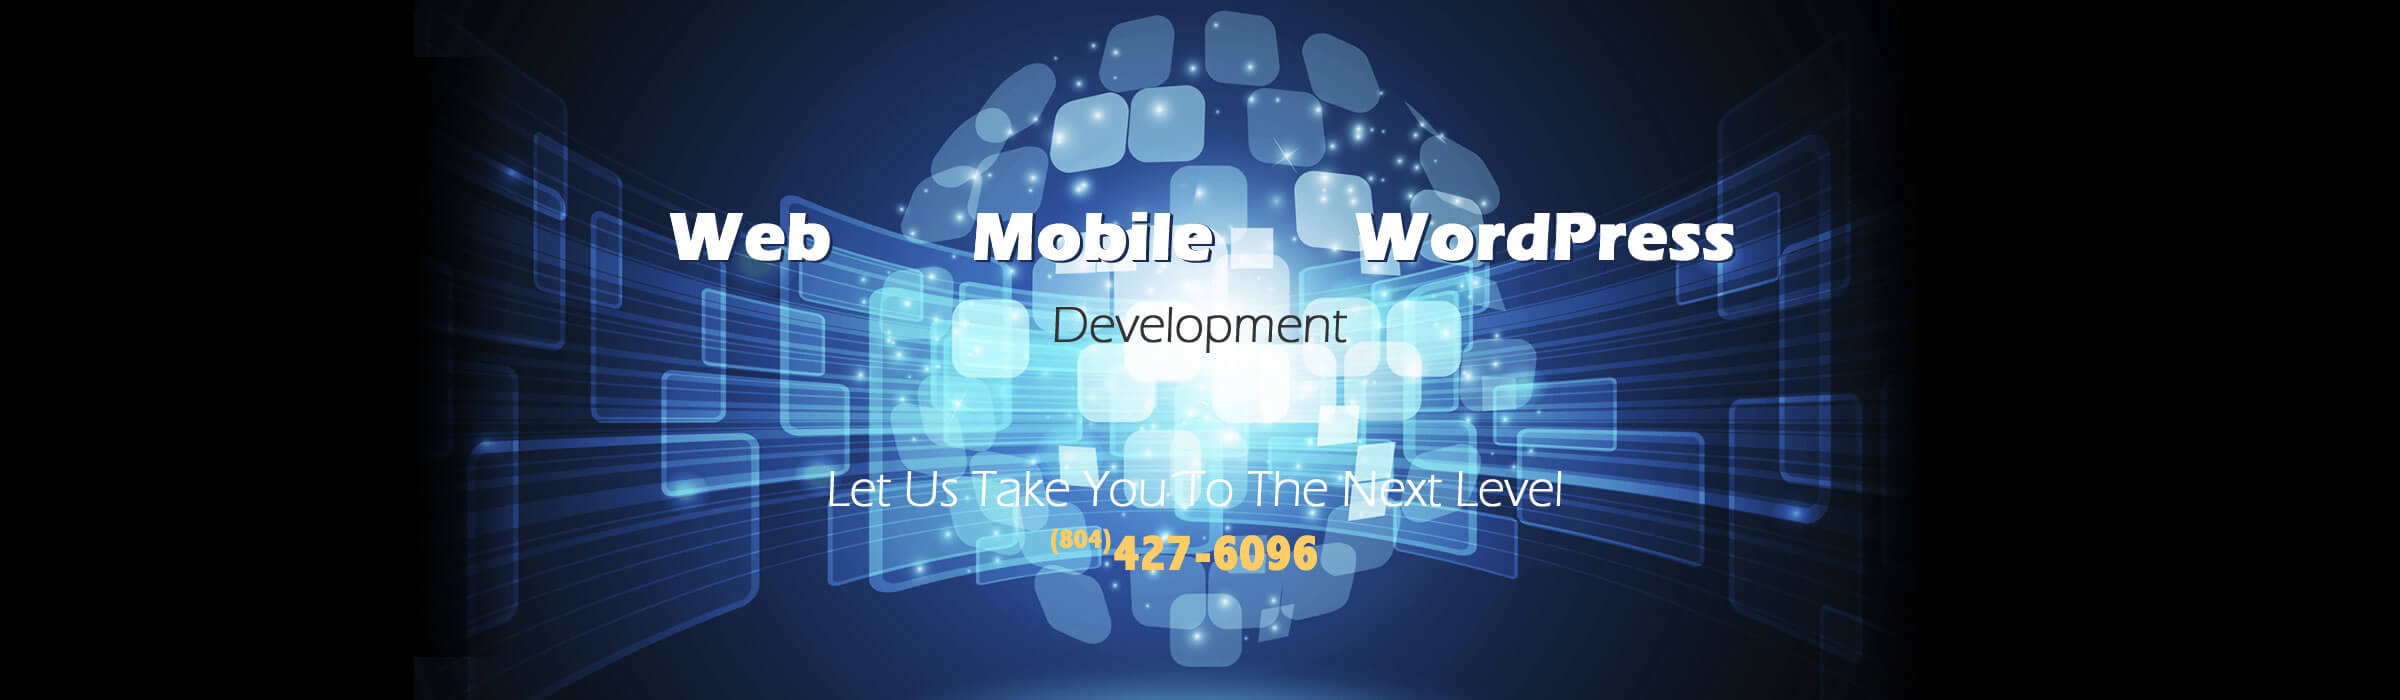 Web, Mobile, WordPress Development